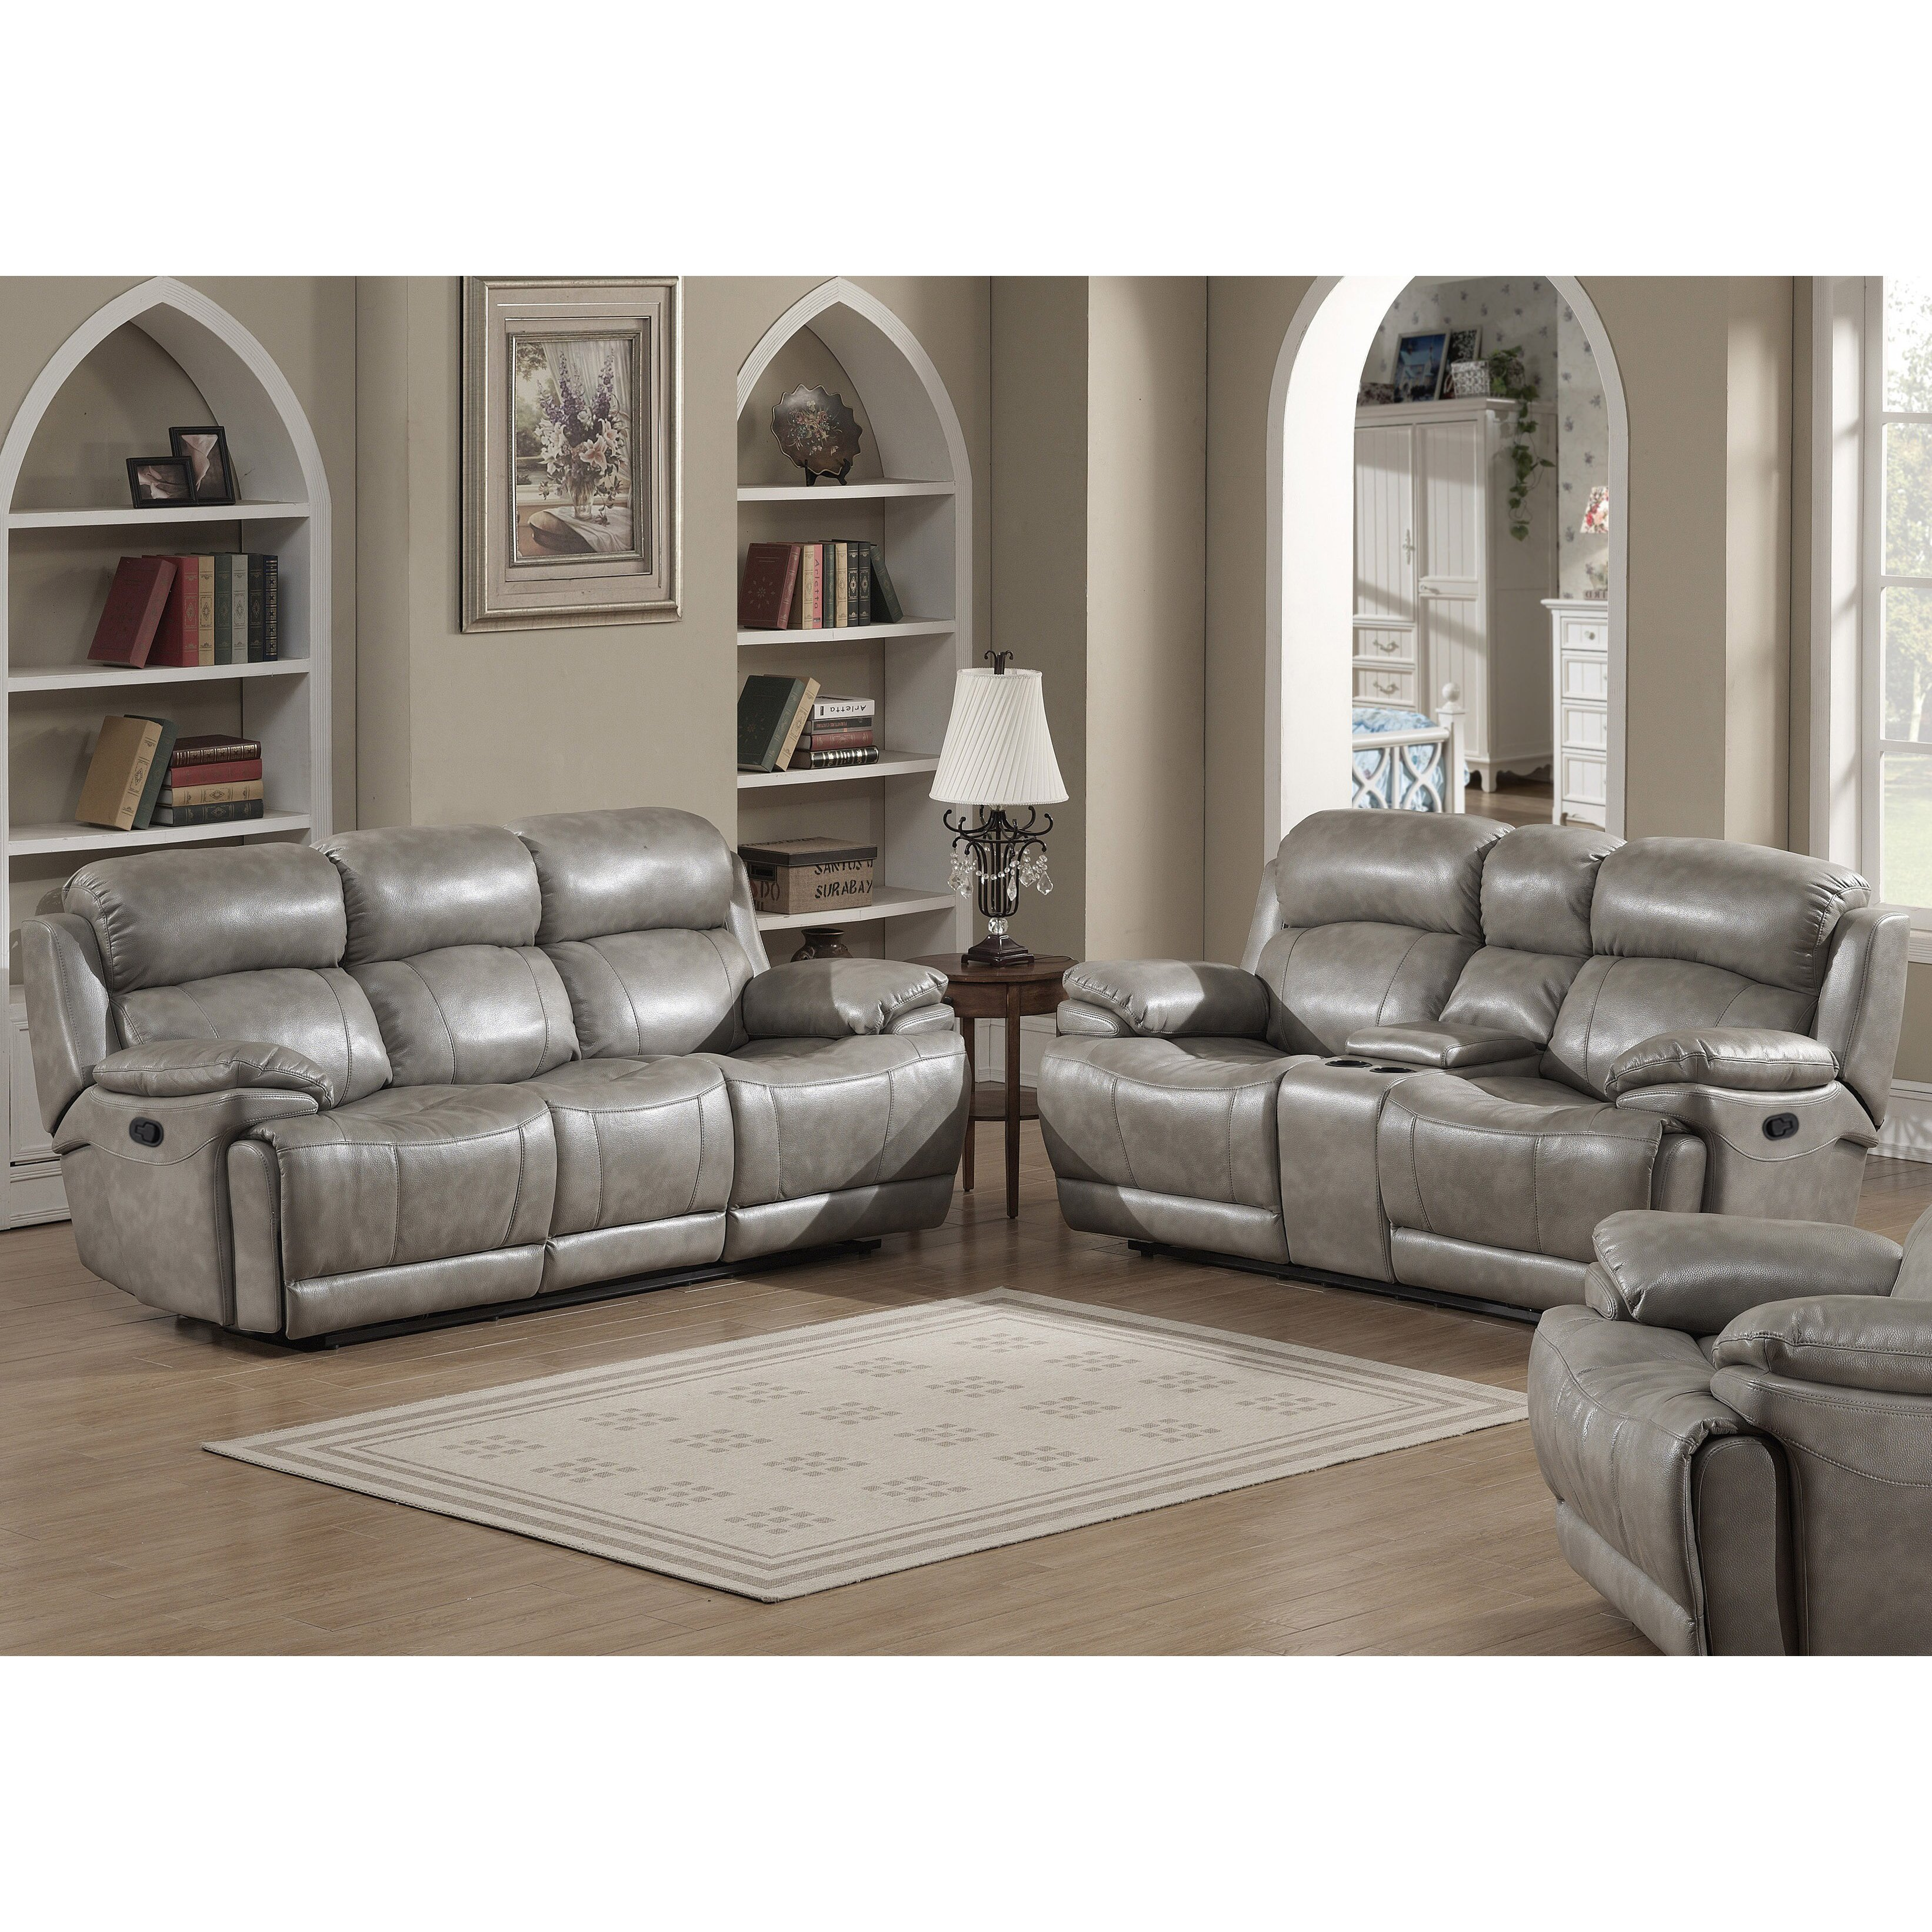 Couch Stores Near Me: AC Pacific Estella Sofa And Loveseat Set & Reviews